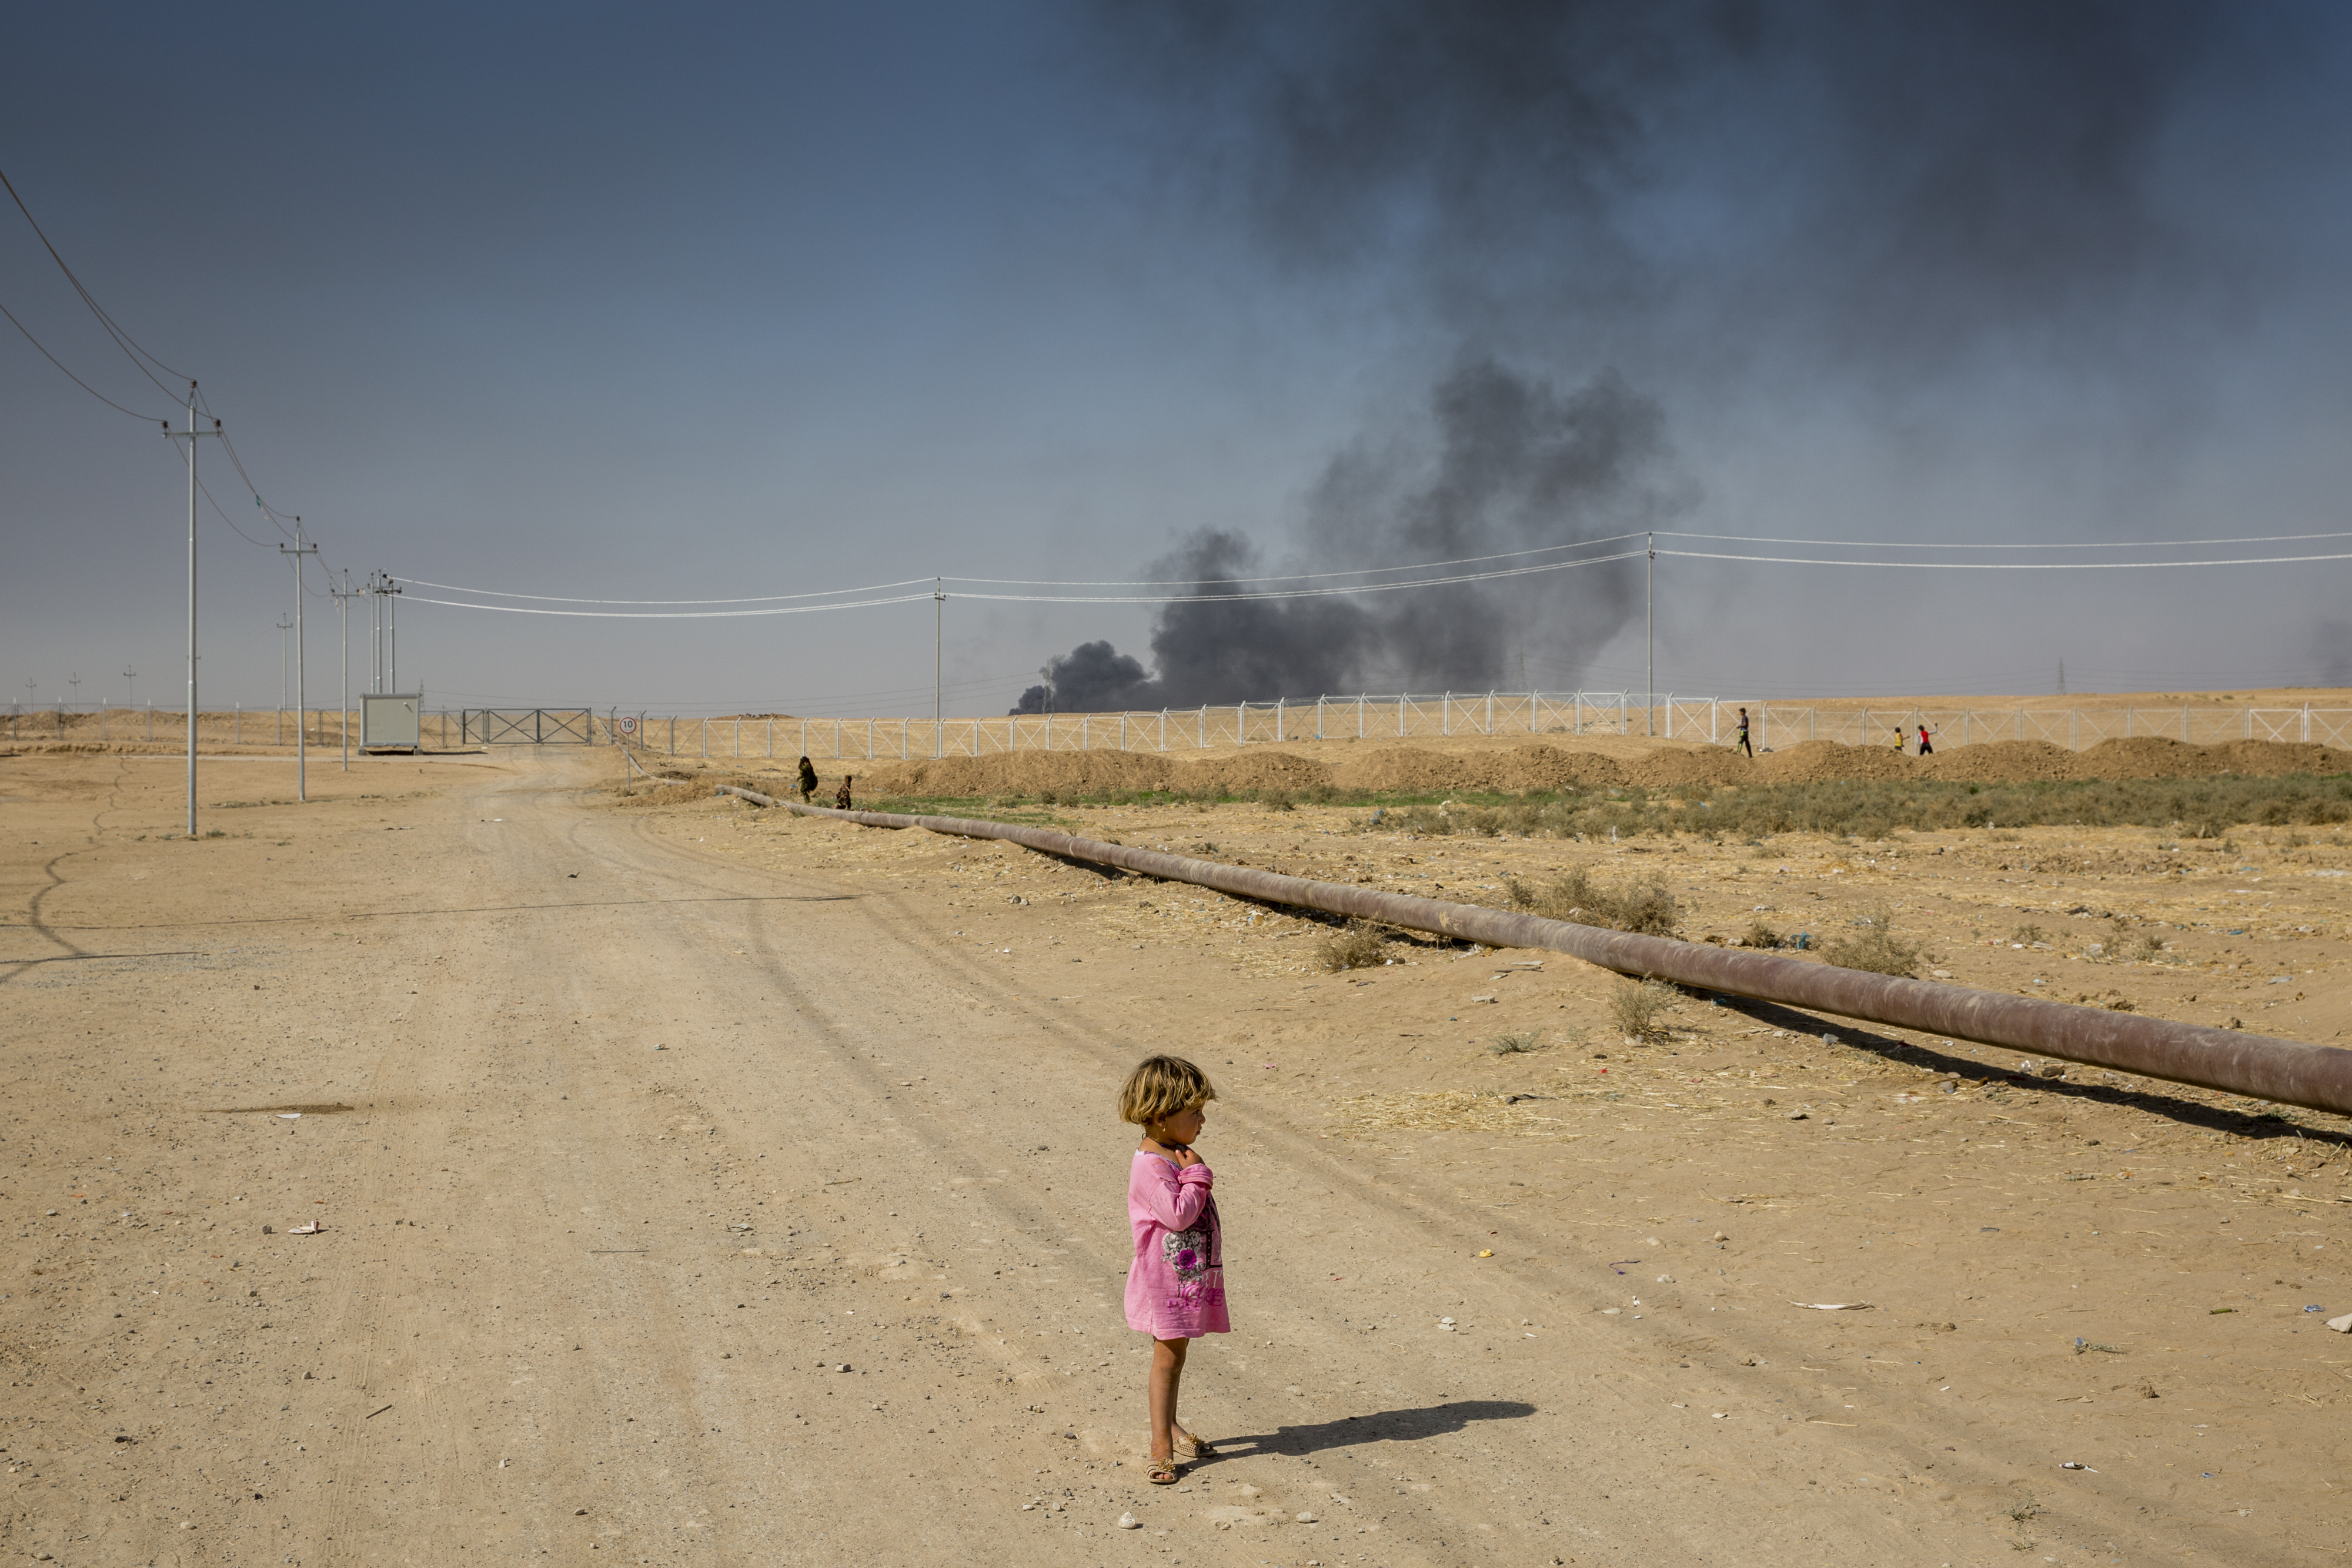 A displaced child stands on the edge of Debaga camp in the Kurdistan Region of Iraq. The camp lies just 40 kilometres from the front line in the military push to retake Mosul. © UNHCR/Ivor Prickett